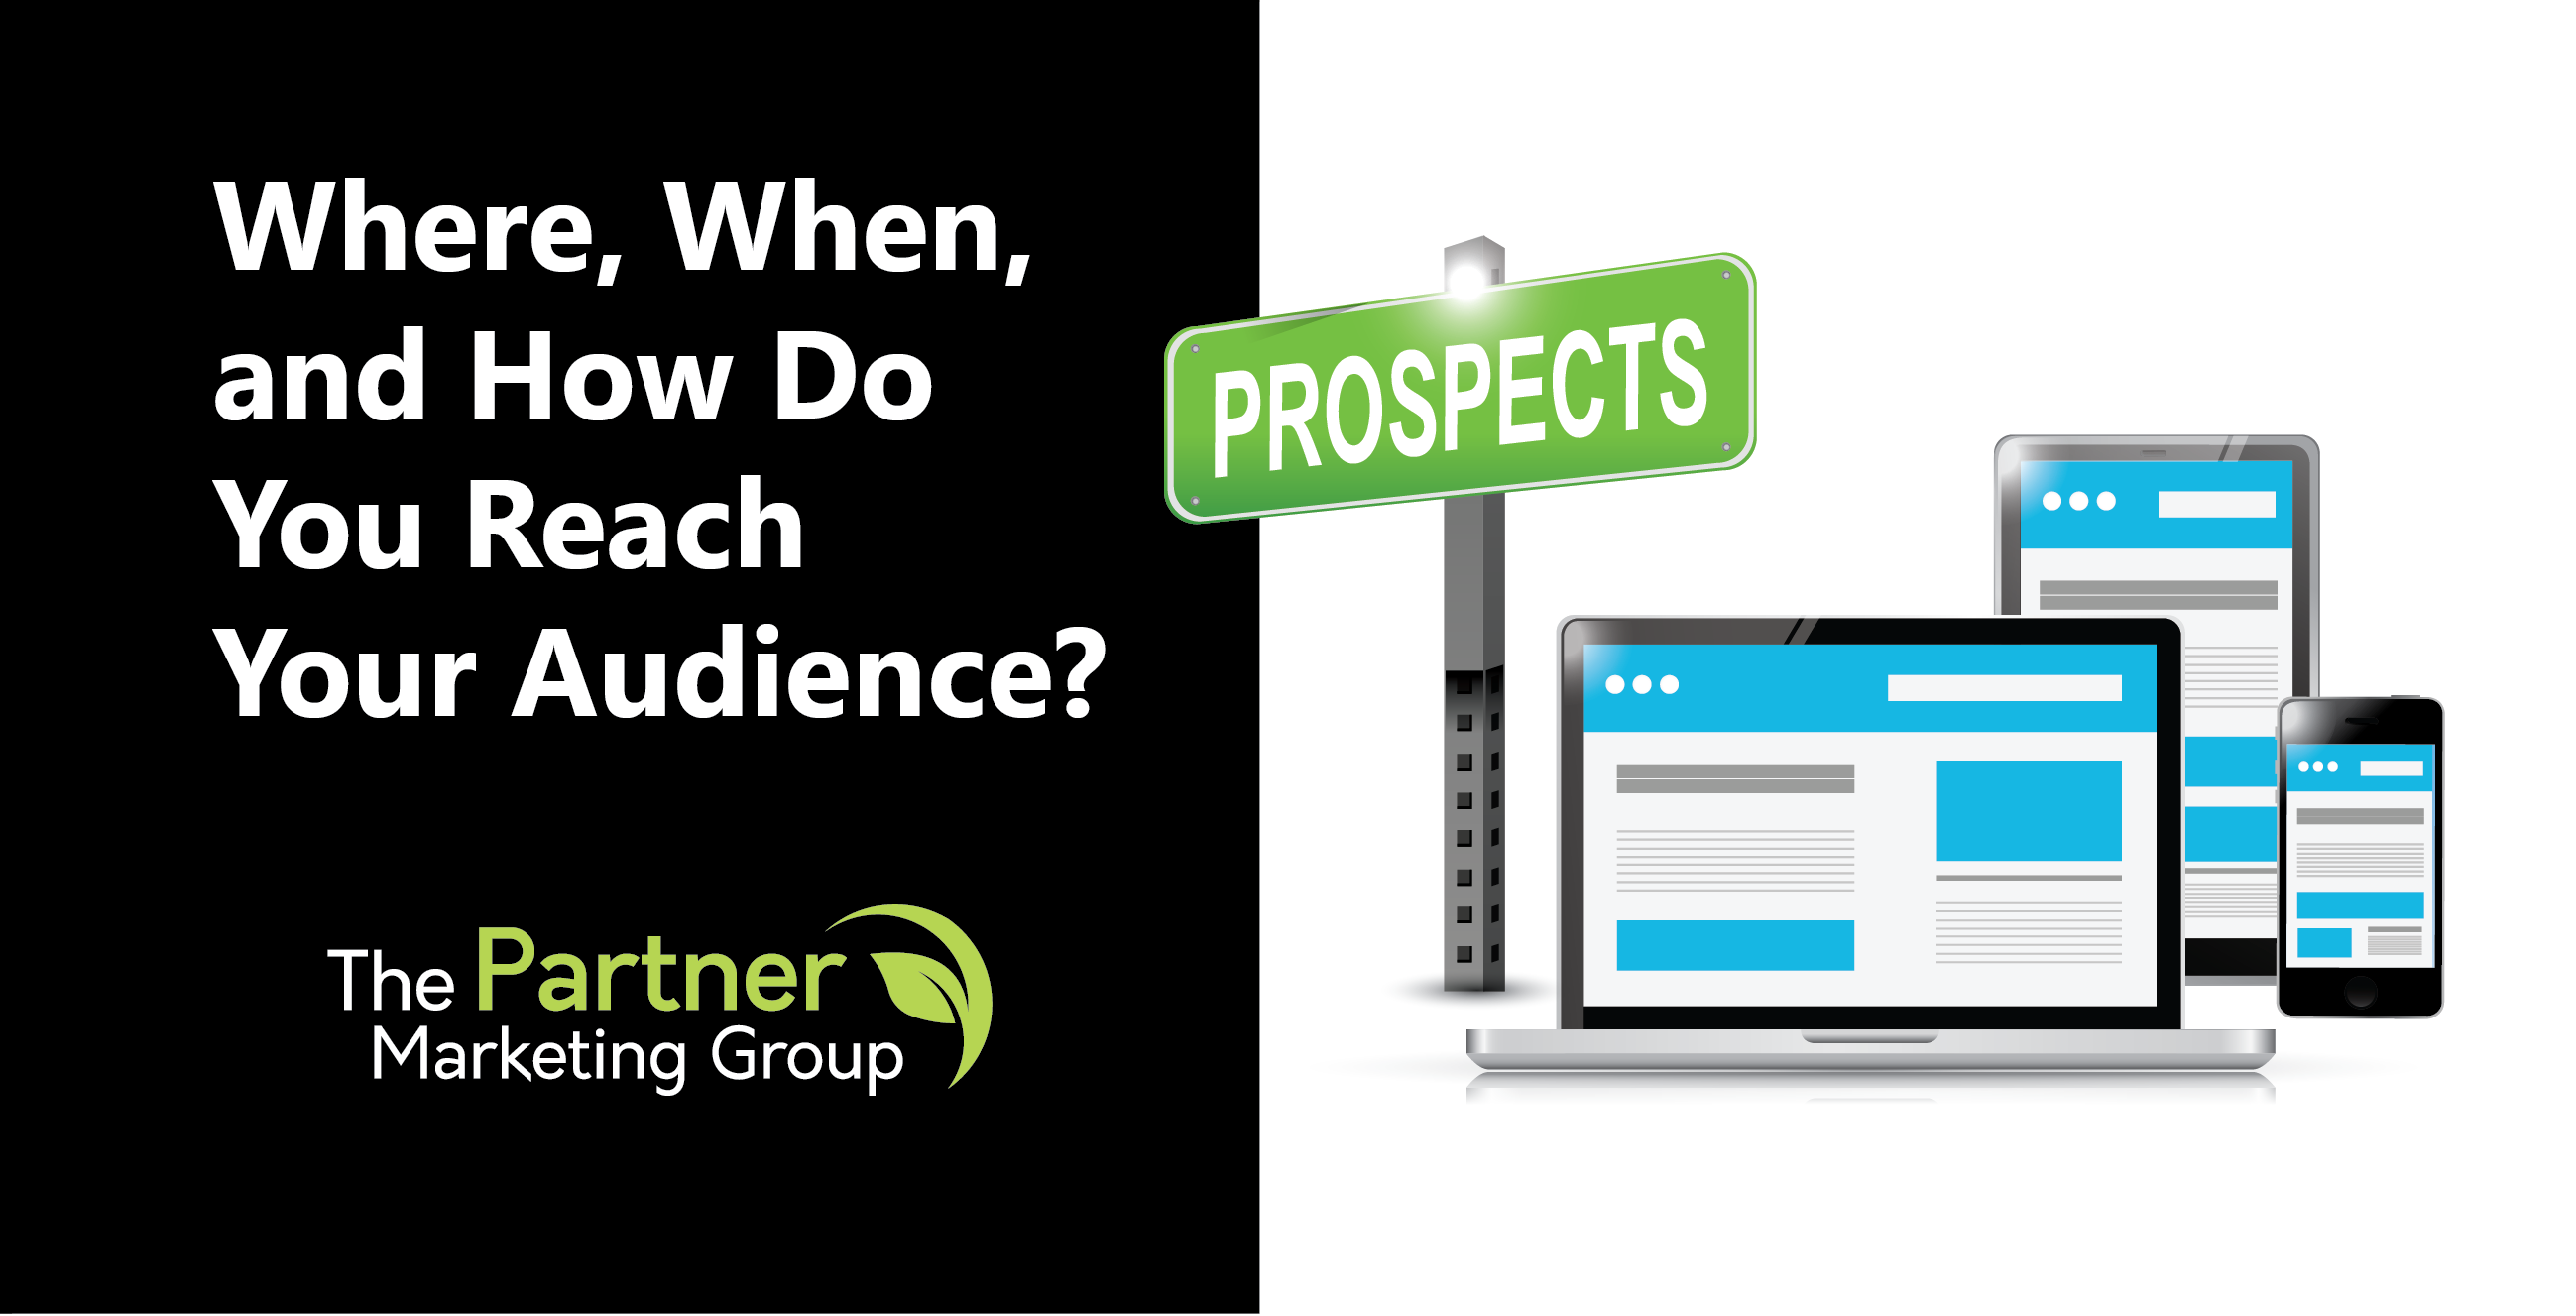 Learn Where, When, and How to Reach Your Prospects